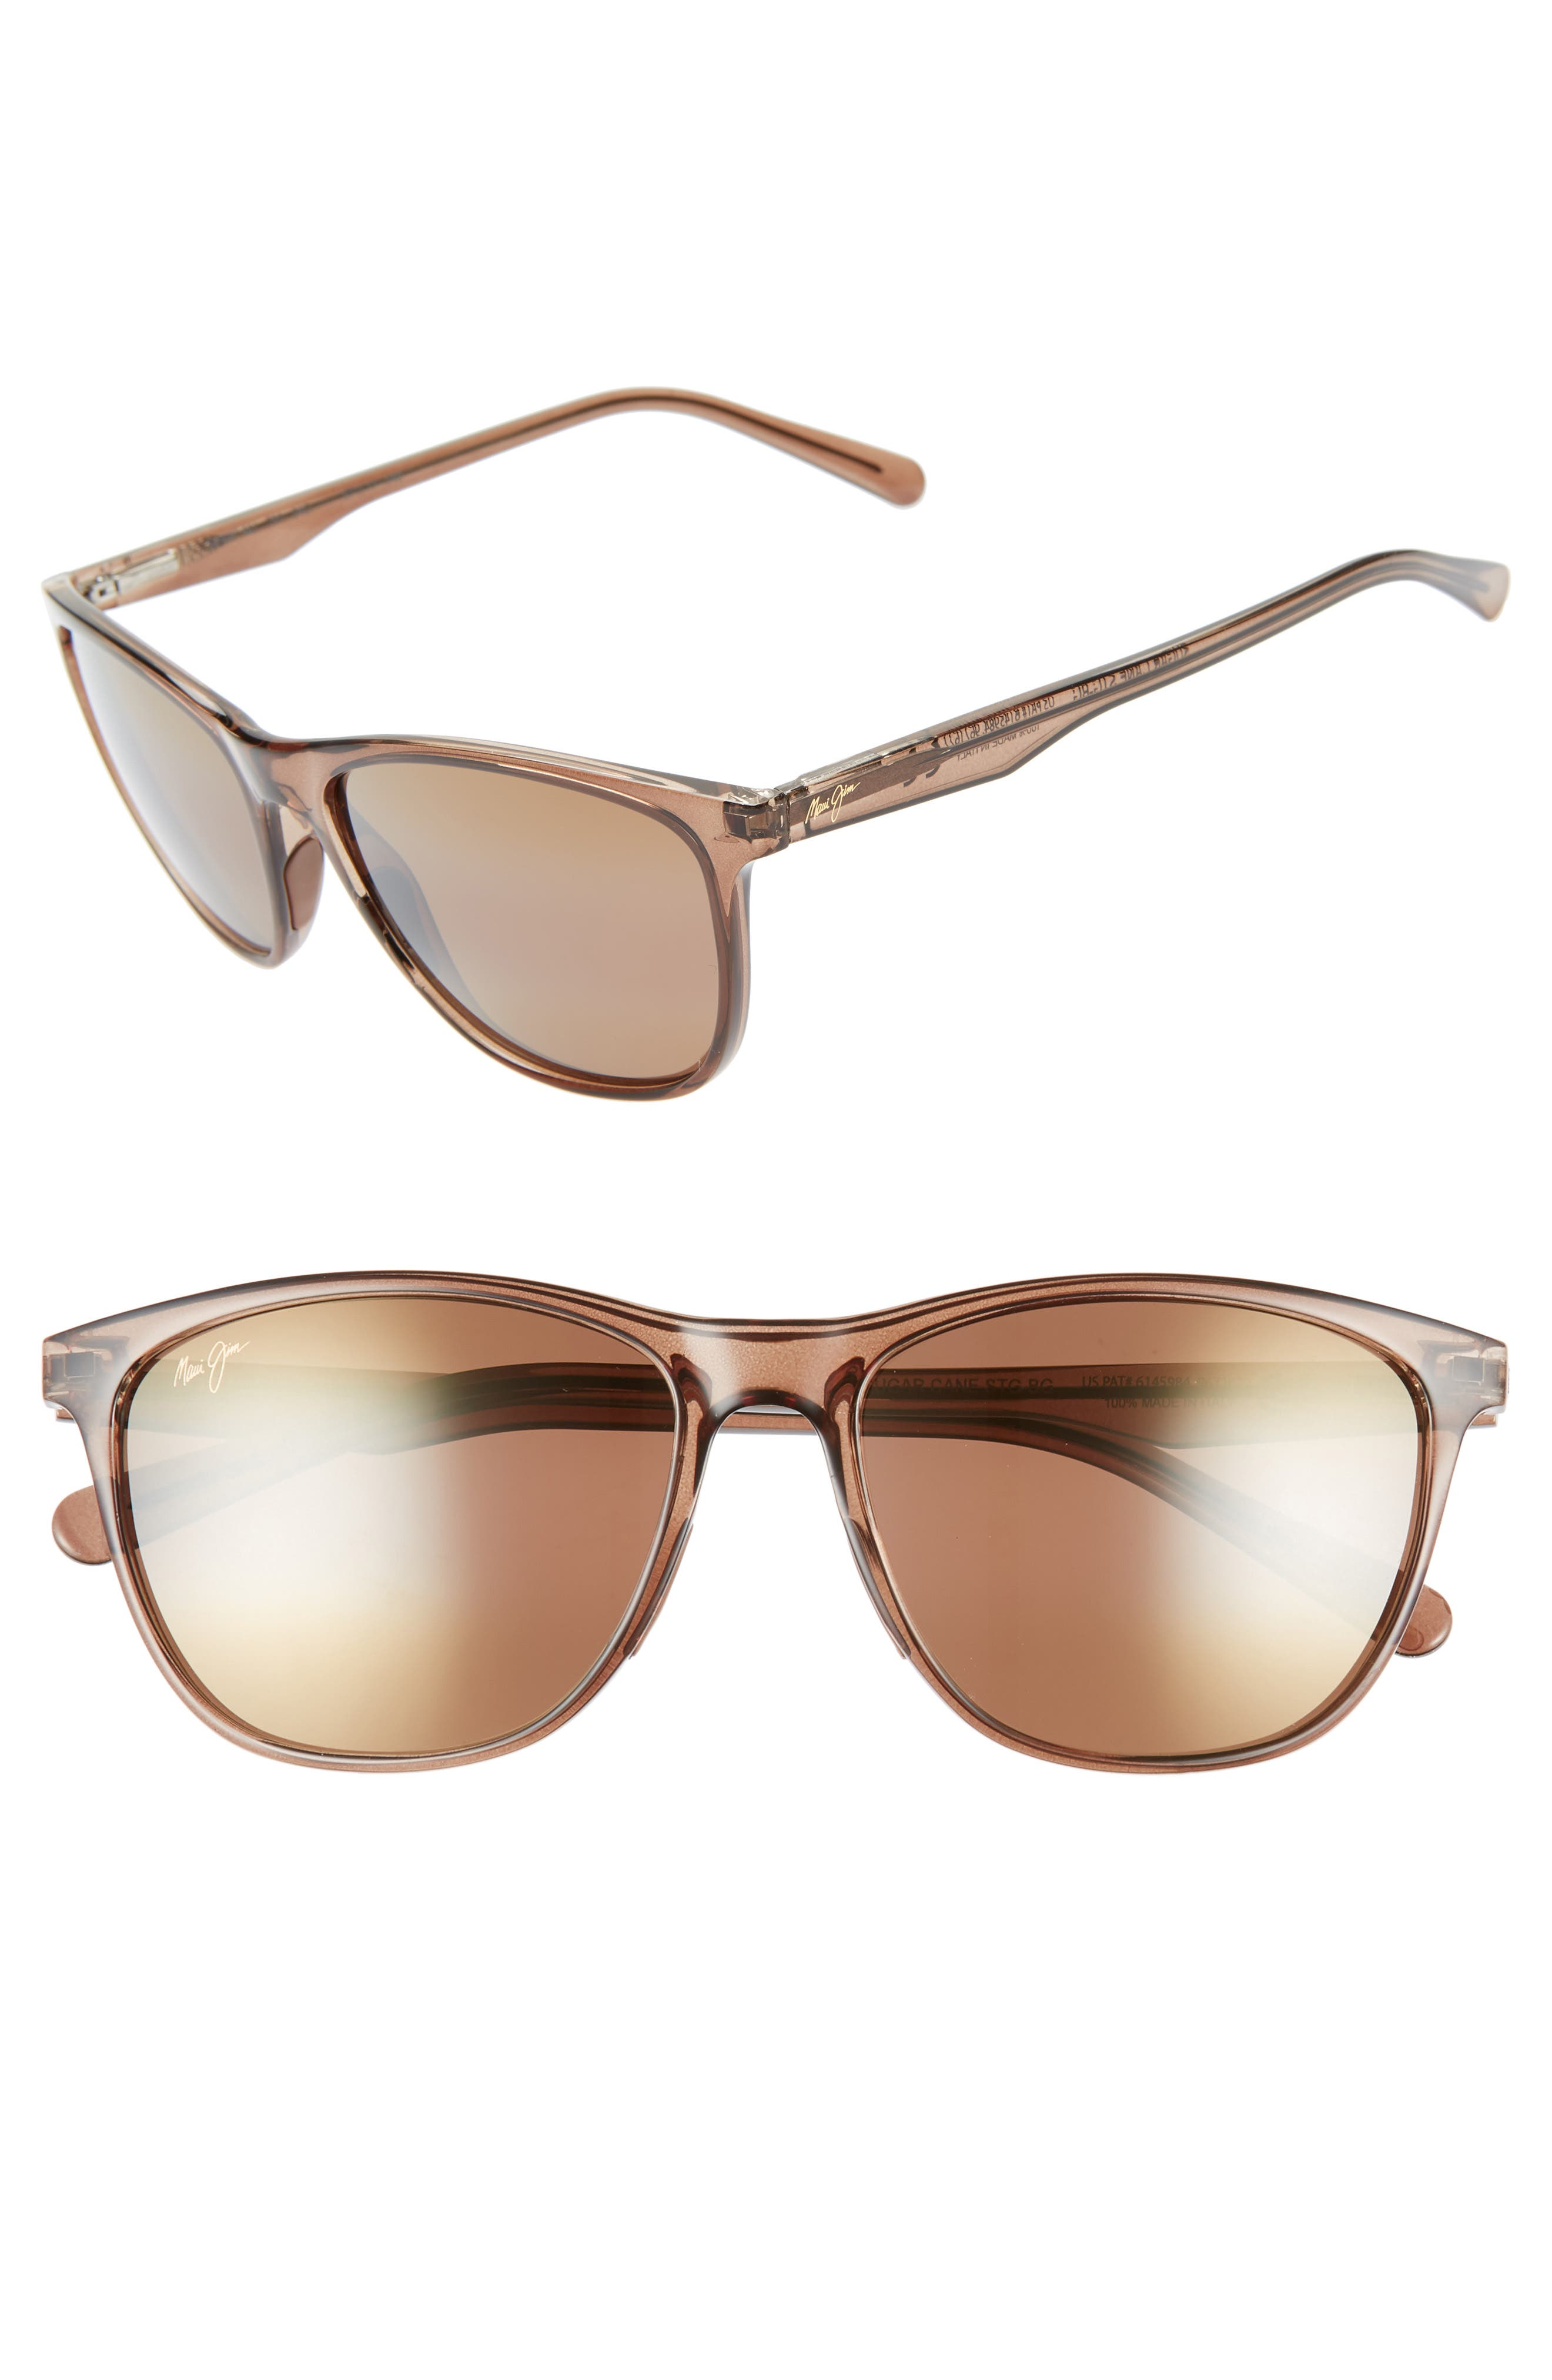 Sugar Cane 57Mm Polarizedplus2 Sunglasses - Transparent Mocha/ Hcl Bronze